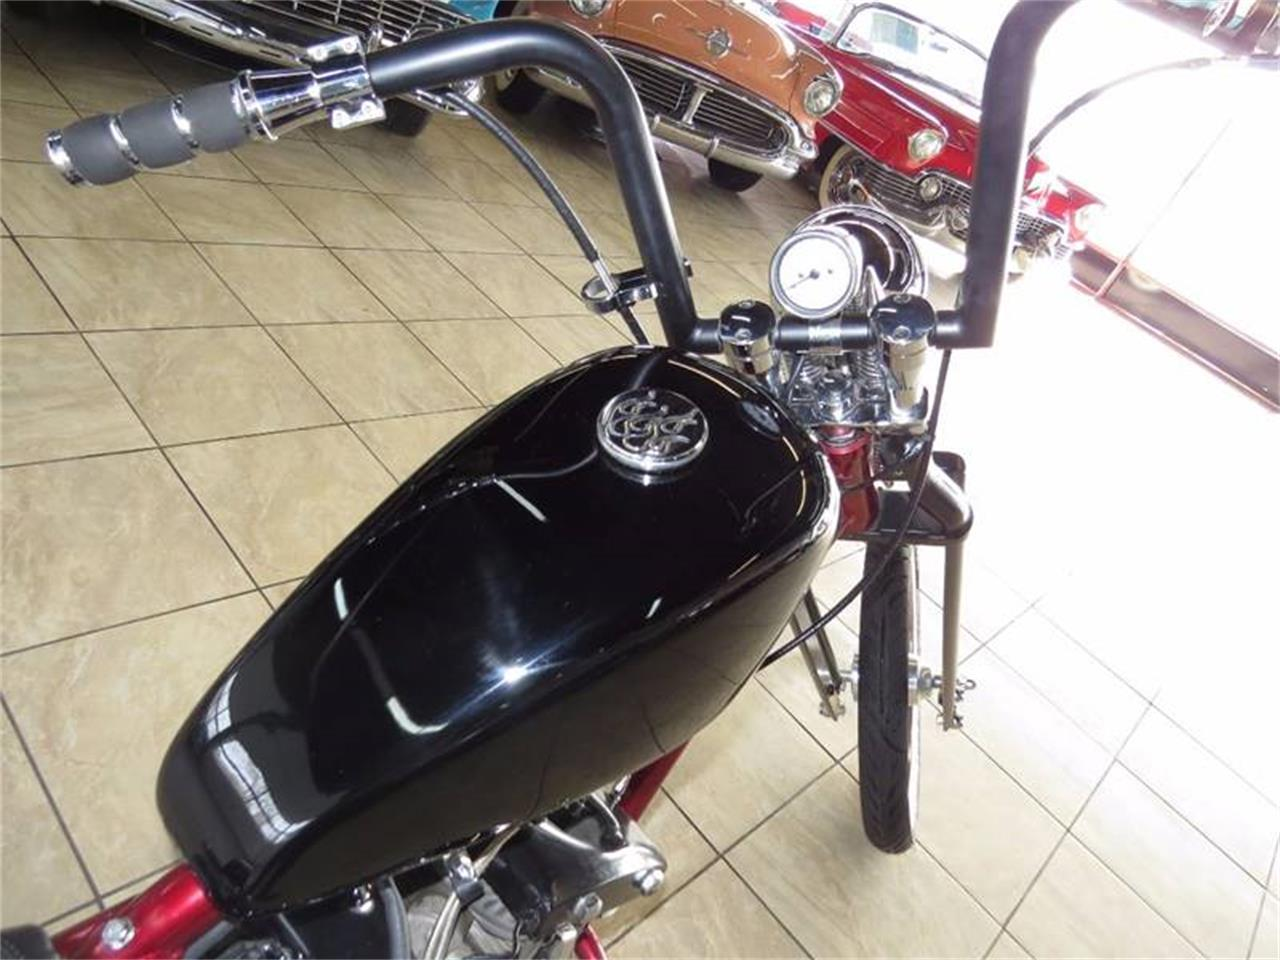 2012 Harley-Davidson Motorcycle for sale in St. Charles, IL – photo 11